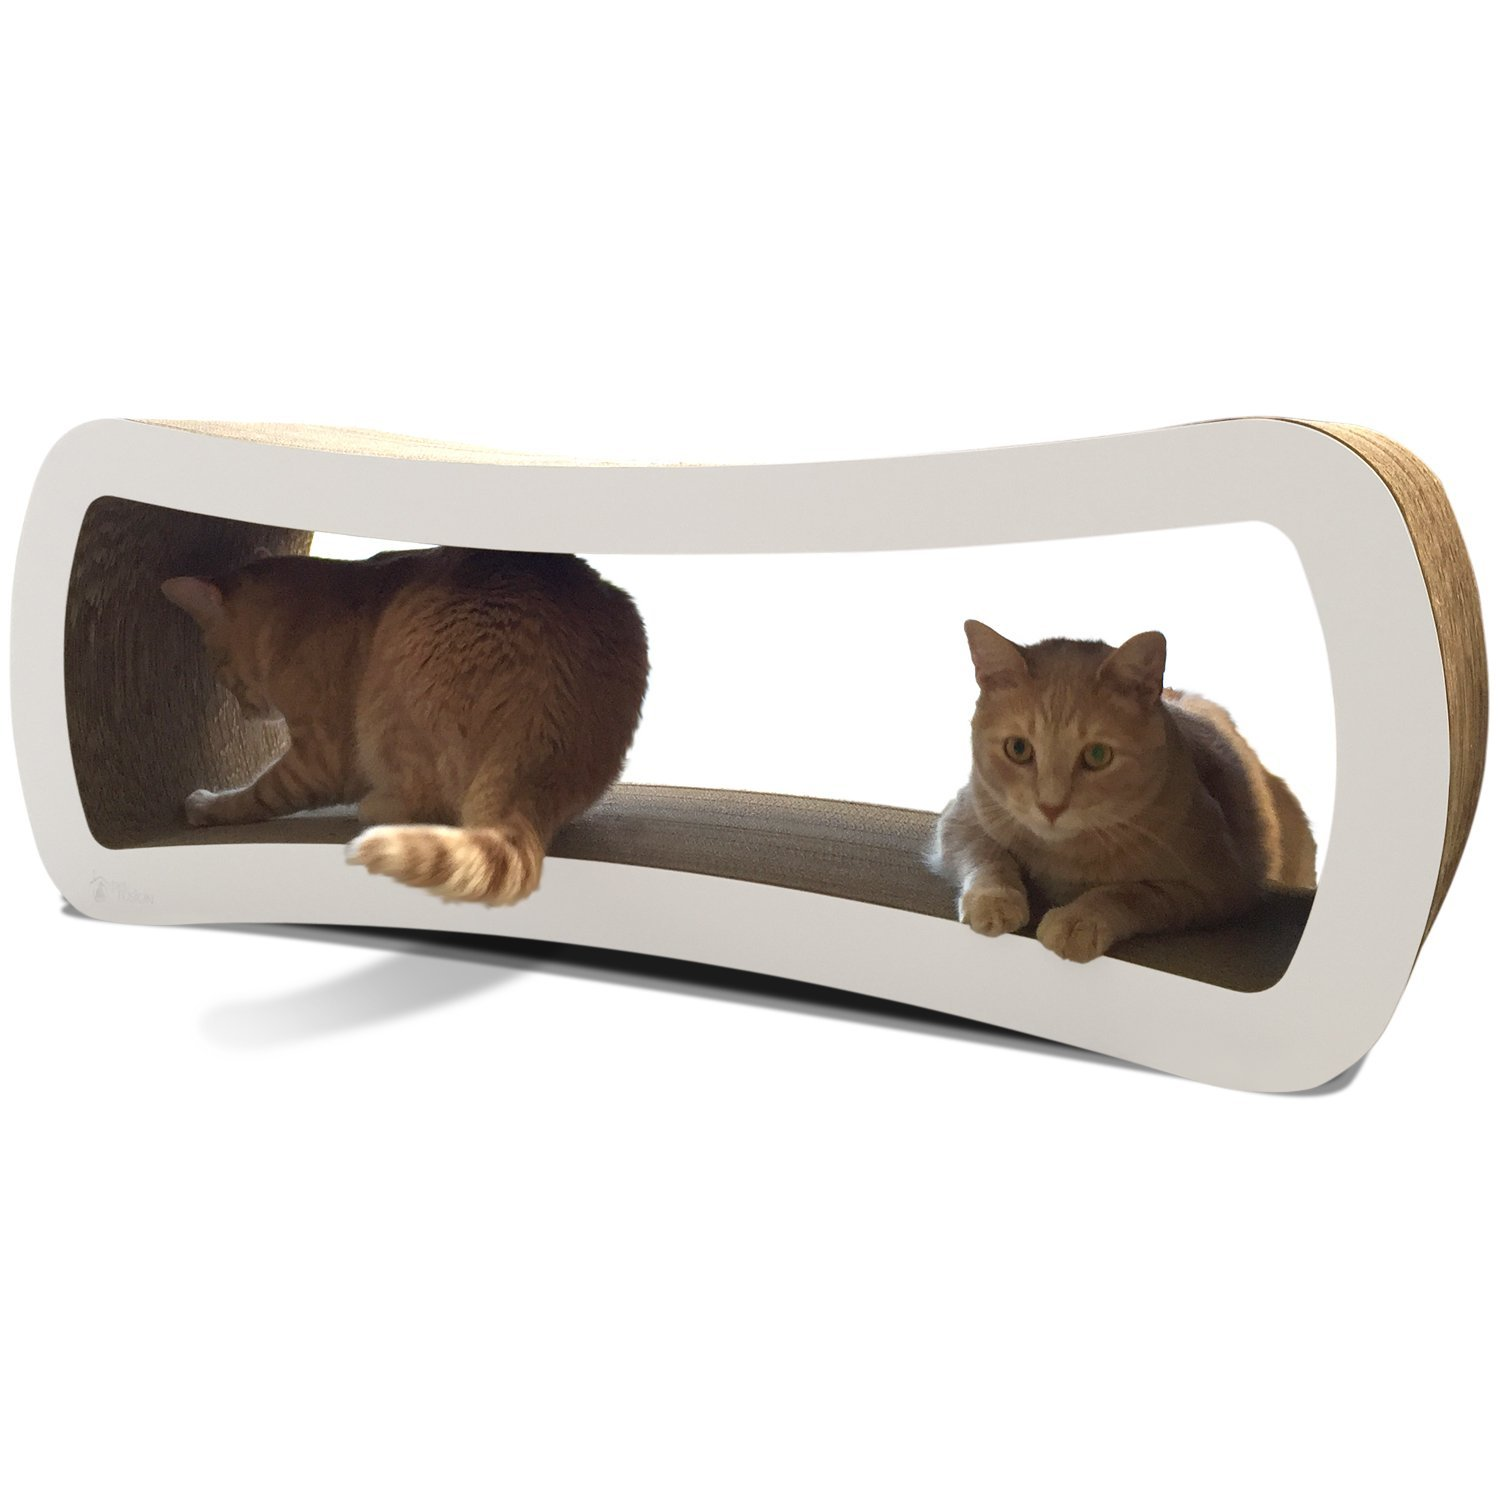 Petfusion Jumbo Cat Scratcher Lounge Naturally For Pets